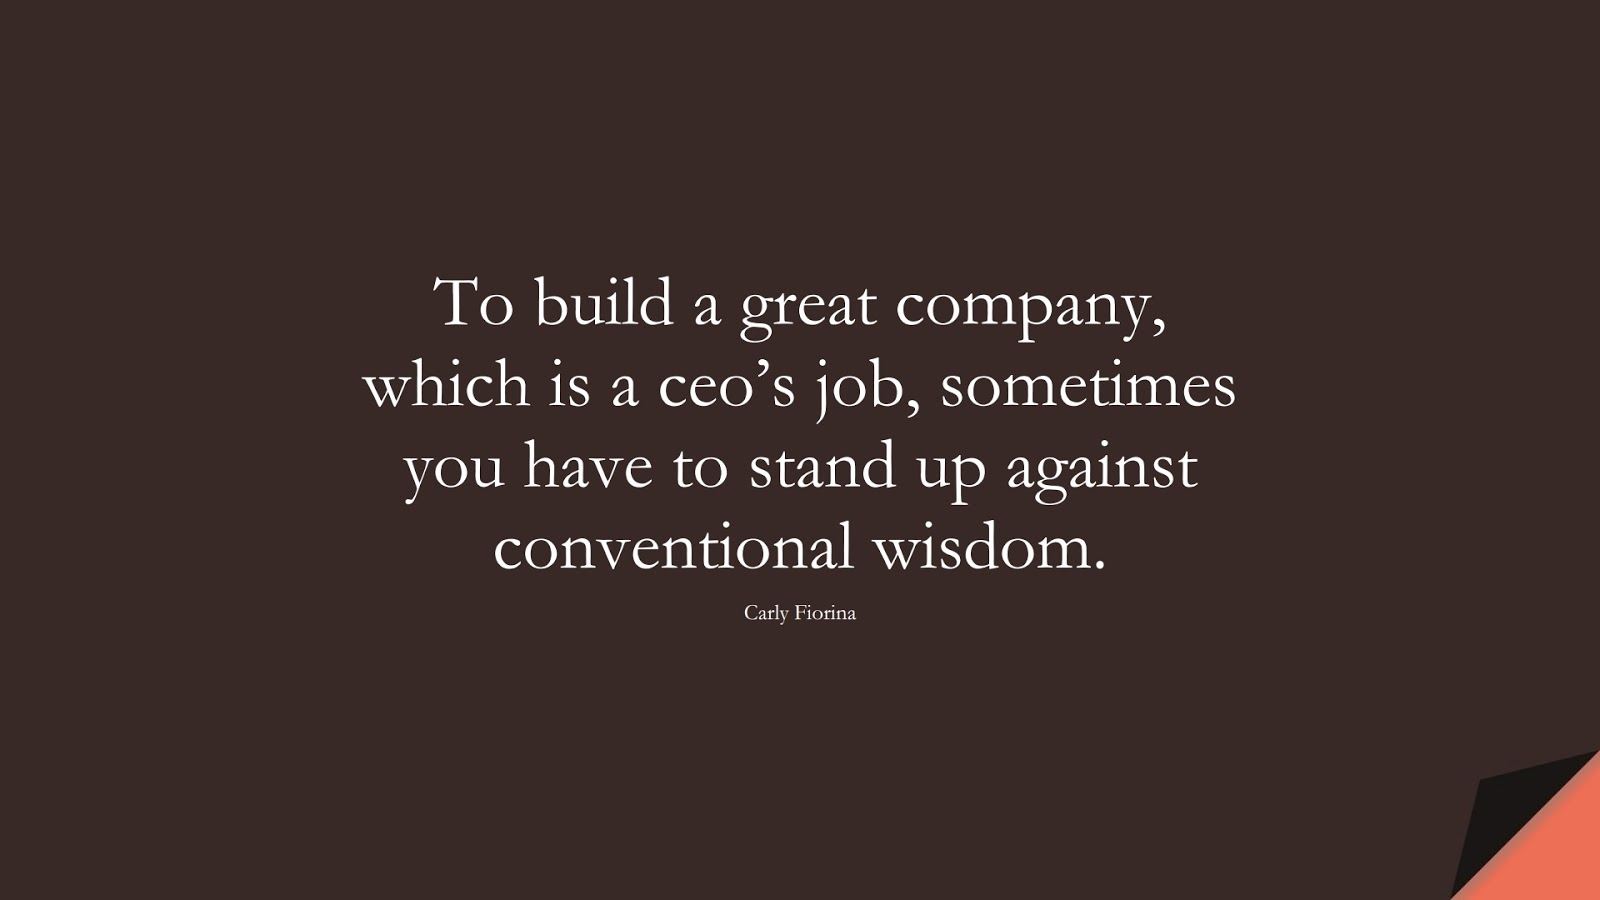 To build a great company, which is a ceo's job, sometimes you have to stand up against conventional wisdom. (Carly Fiorina);  #WordsofWisdom